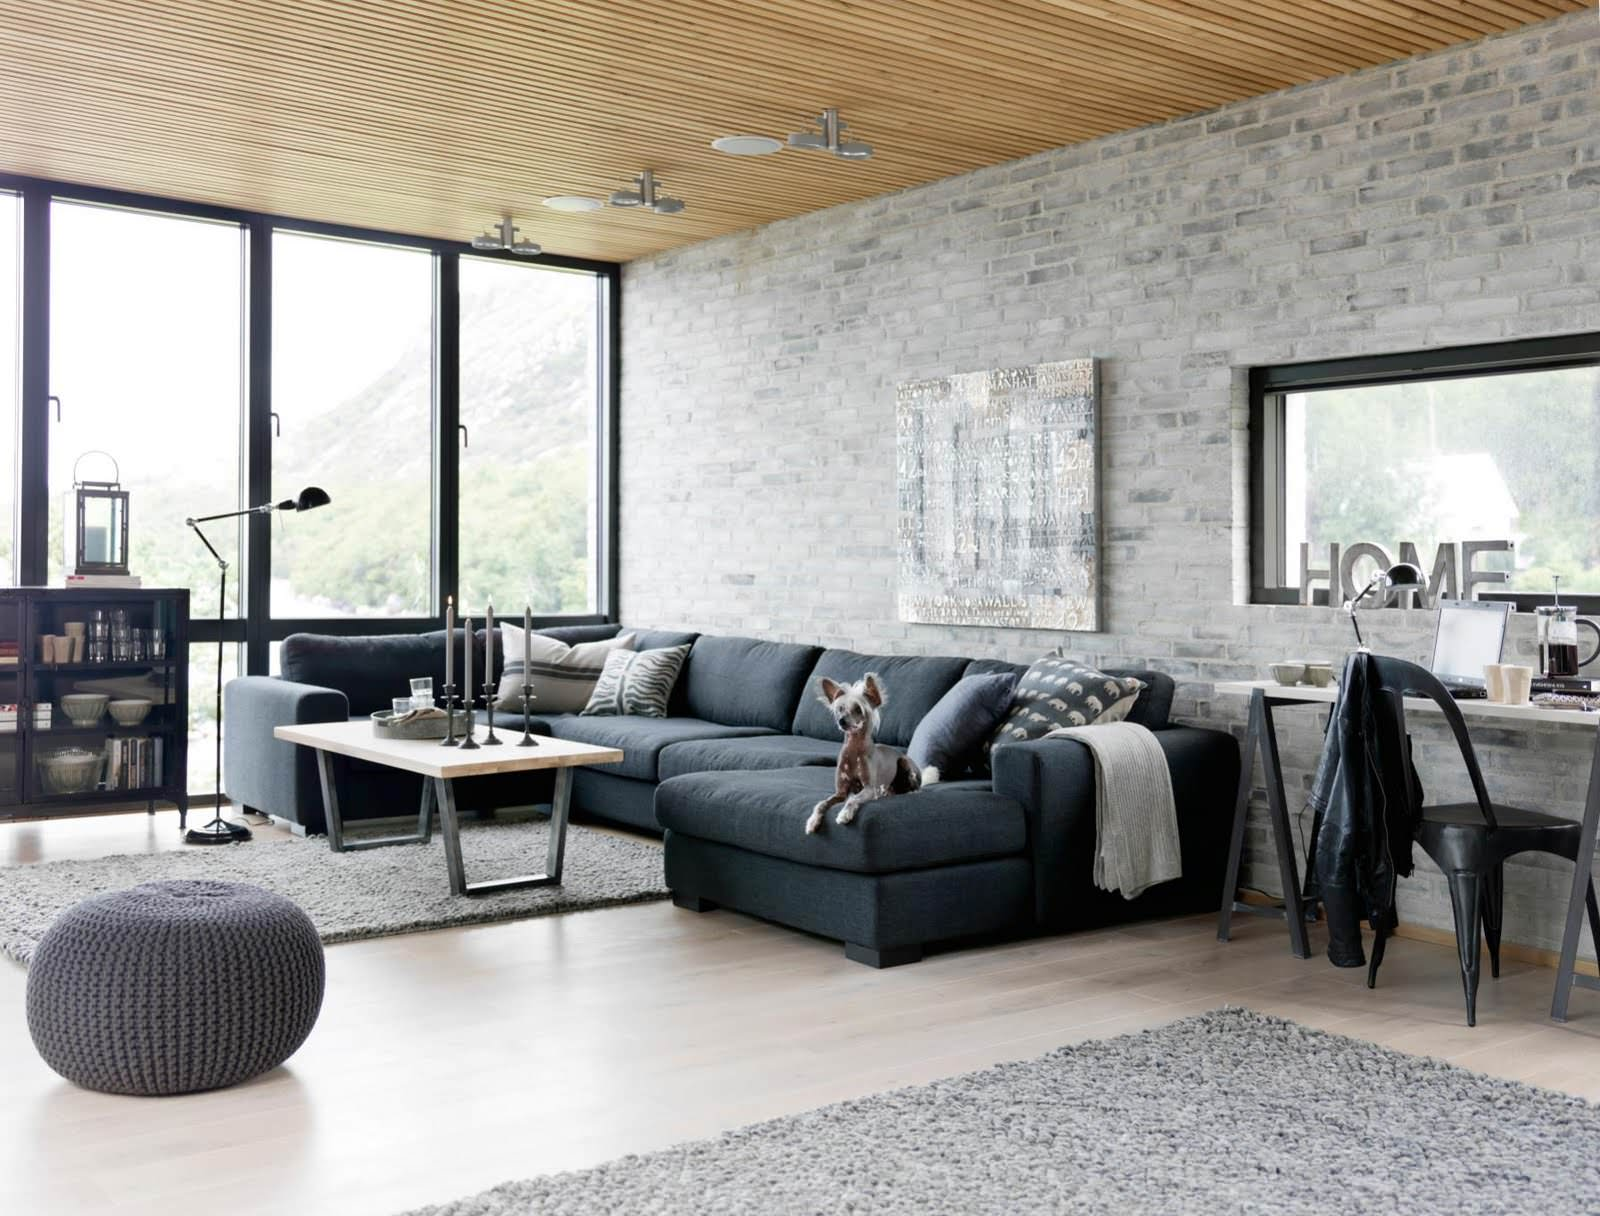 Enchanting Living Room Brick Wall - plusarquitectura.info